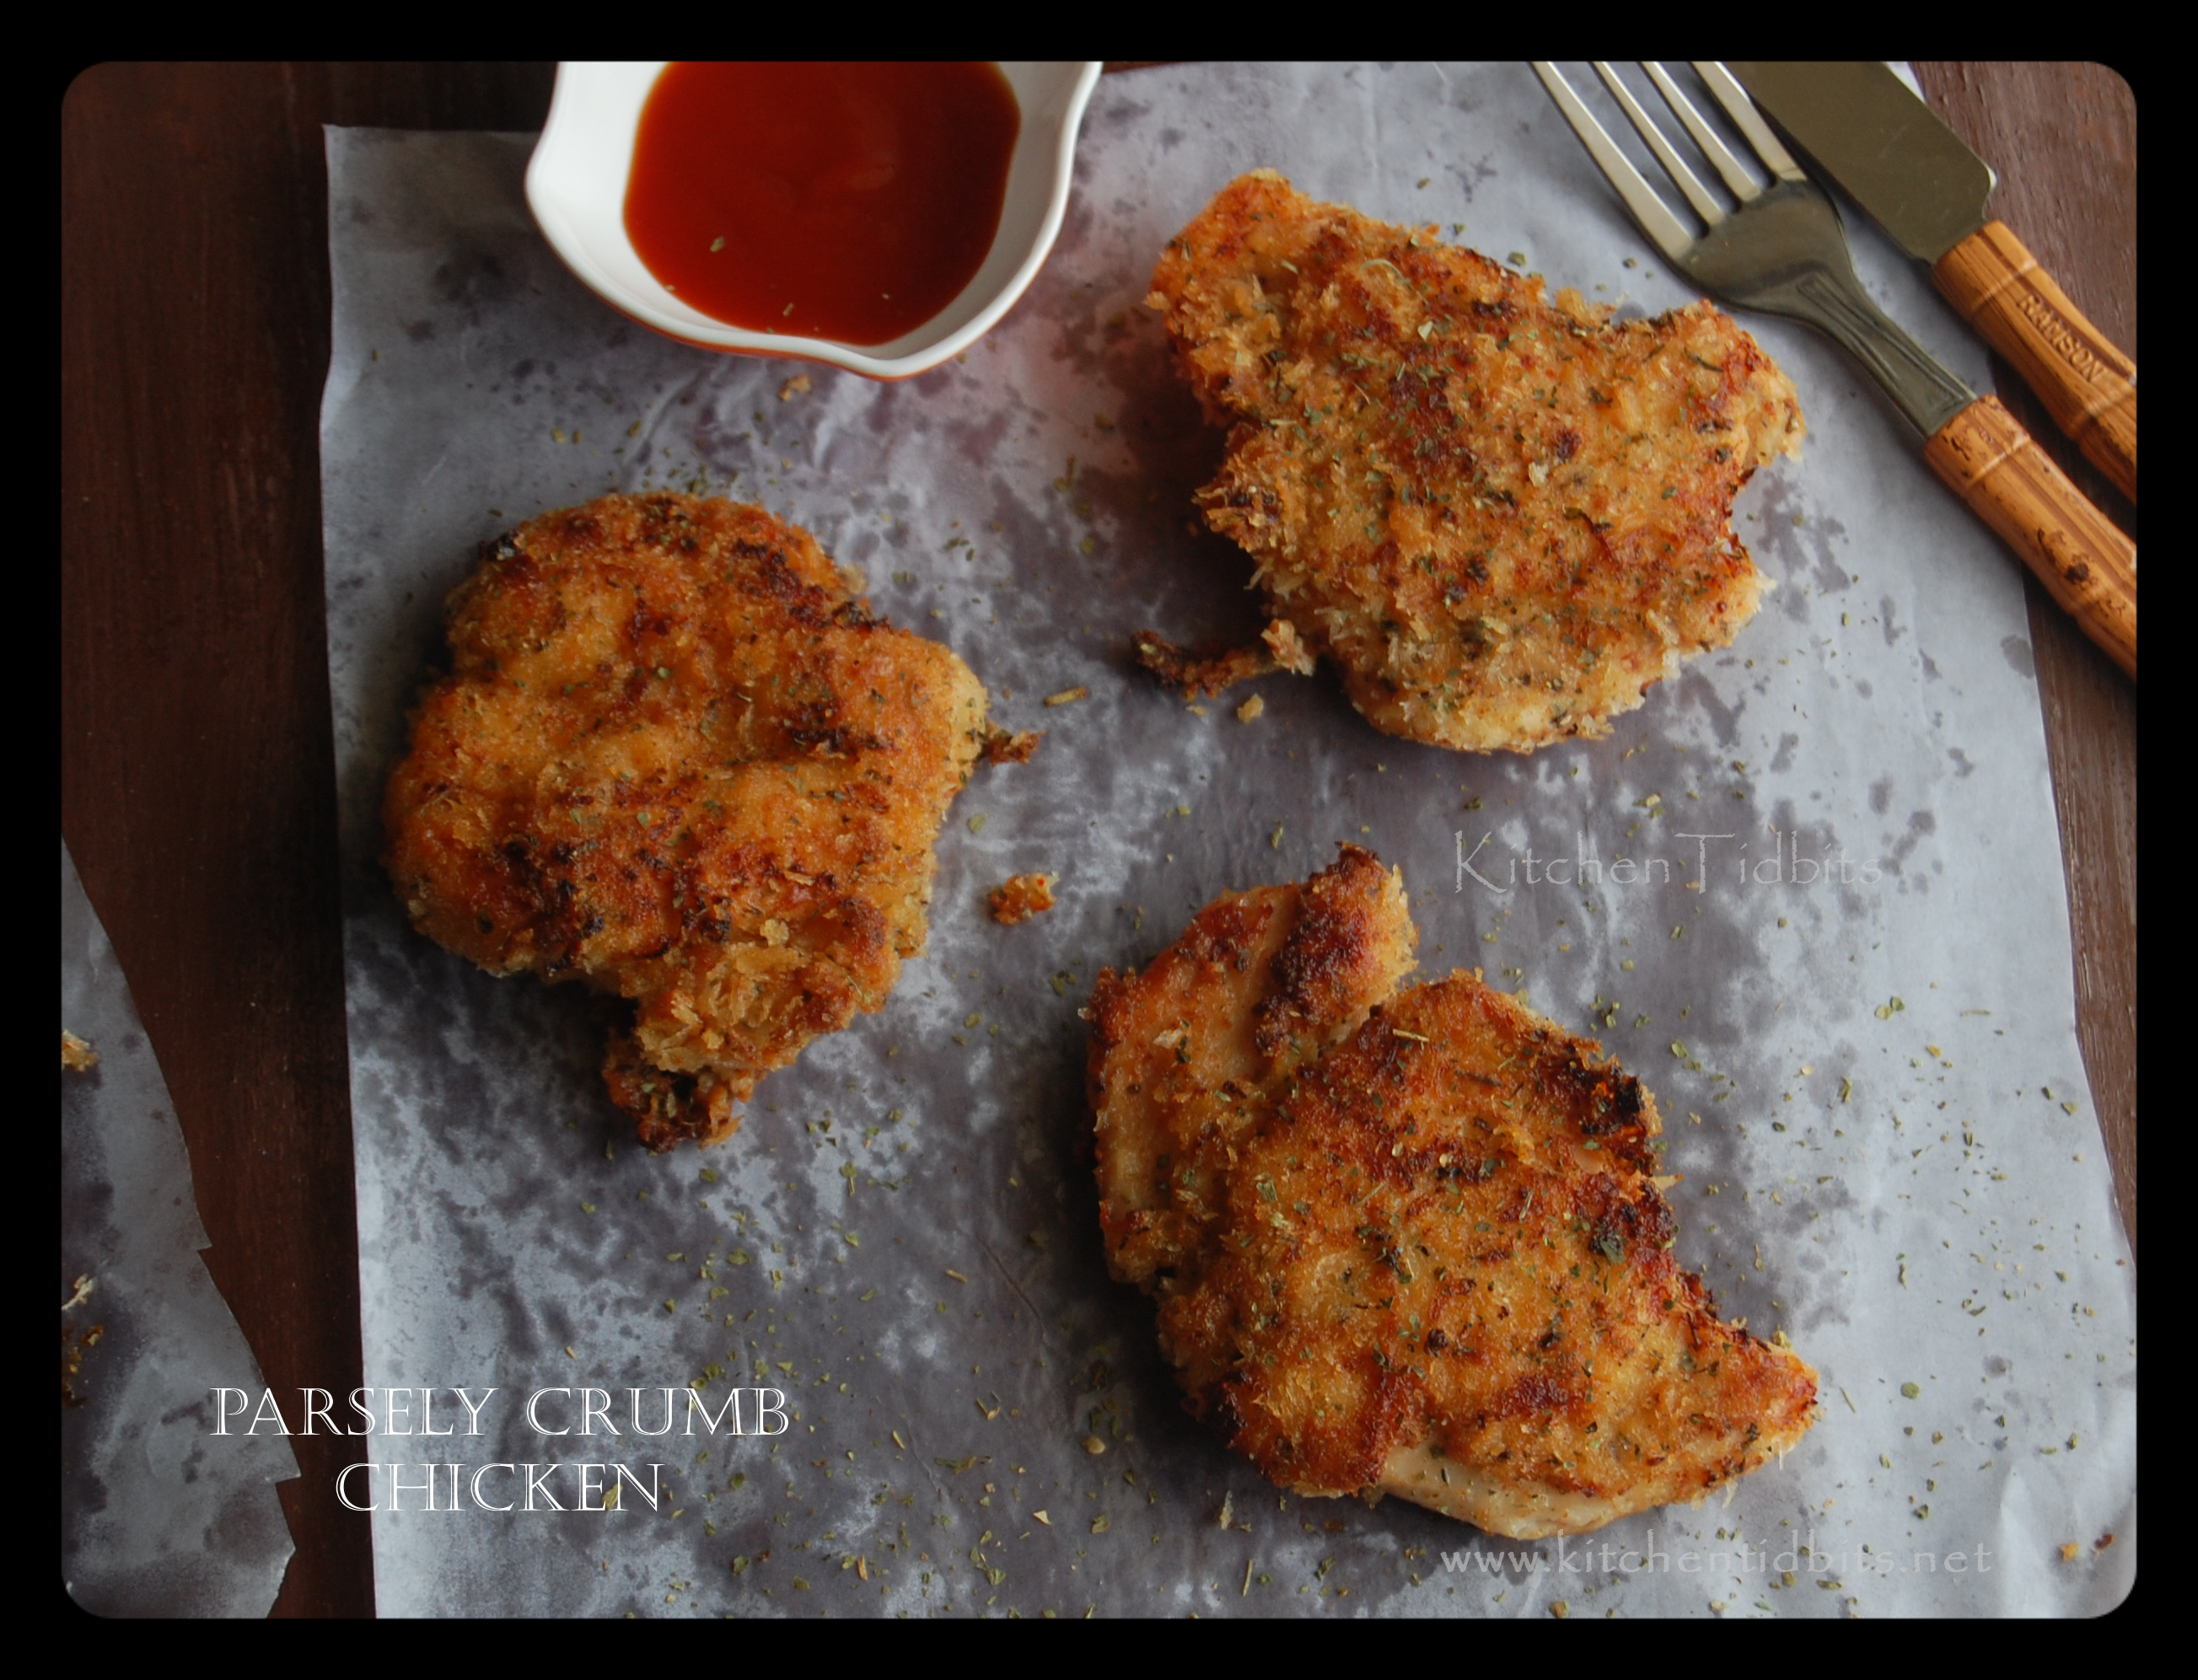 Parsely crumb chicken